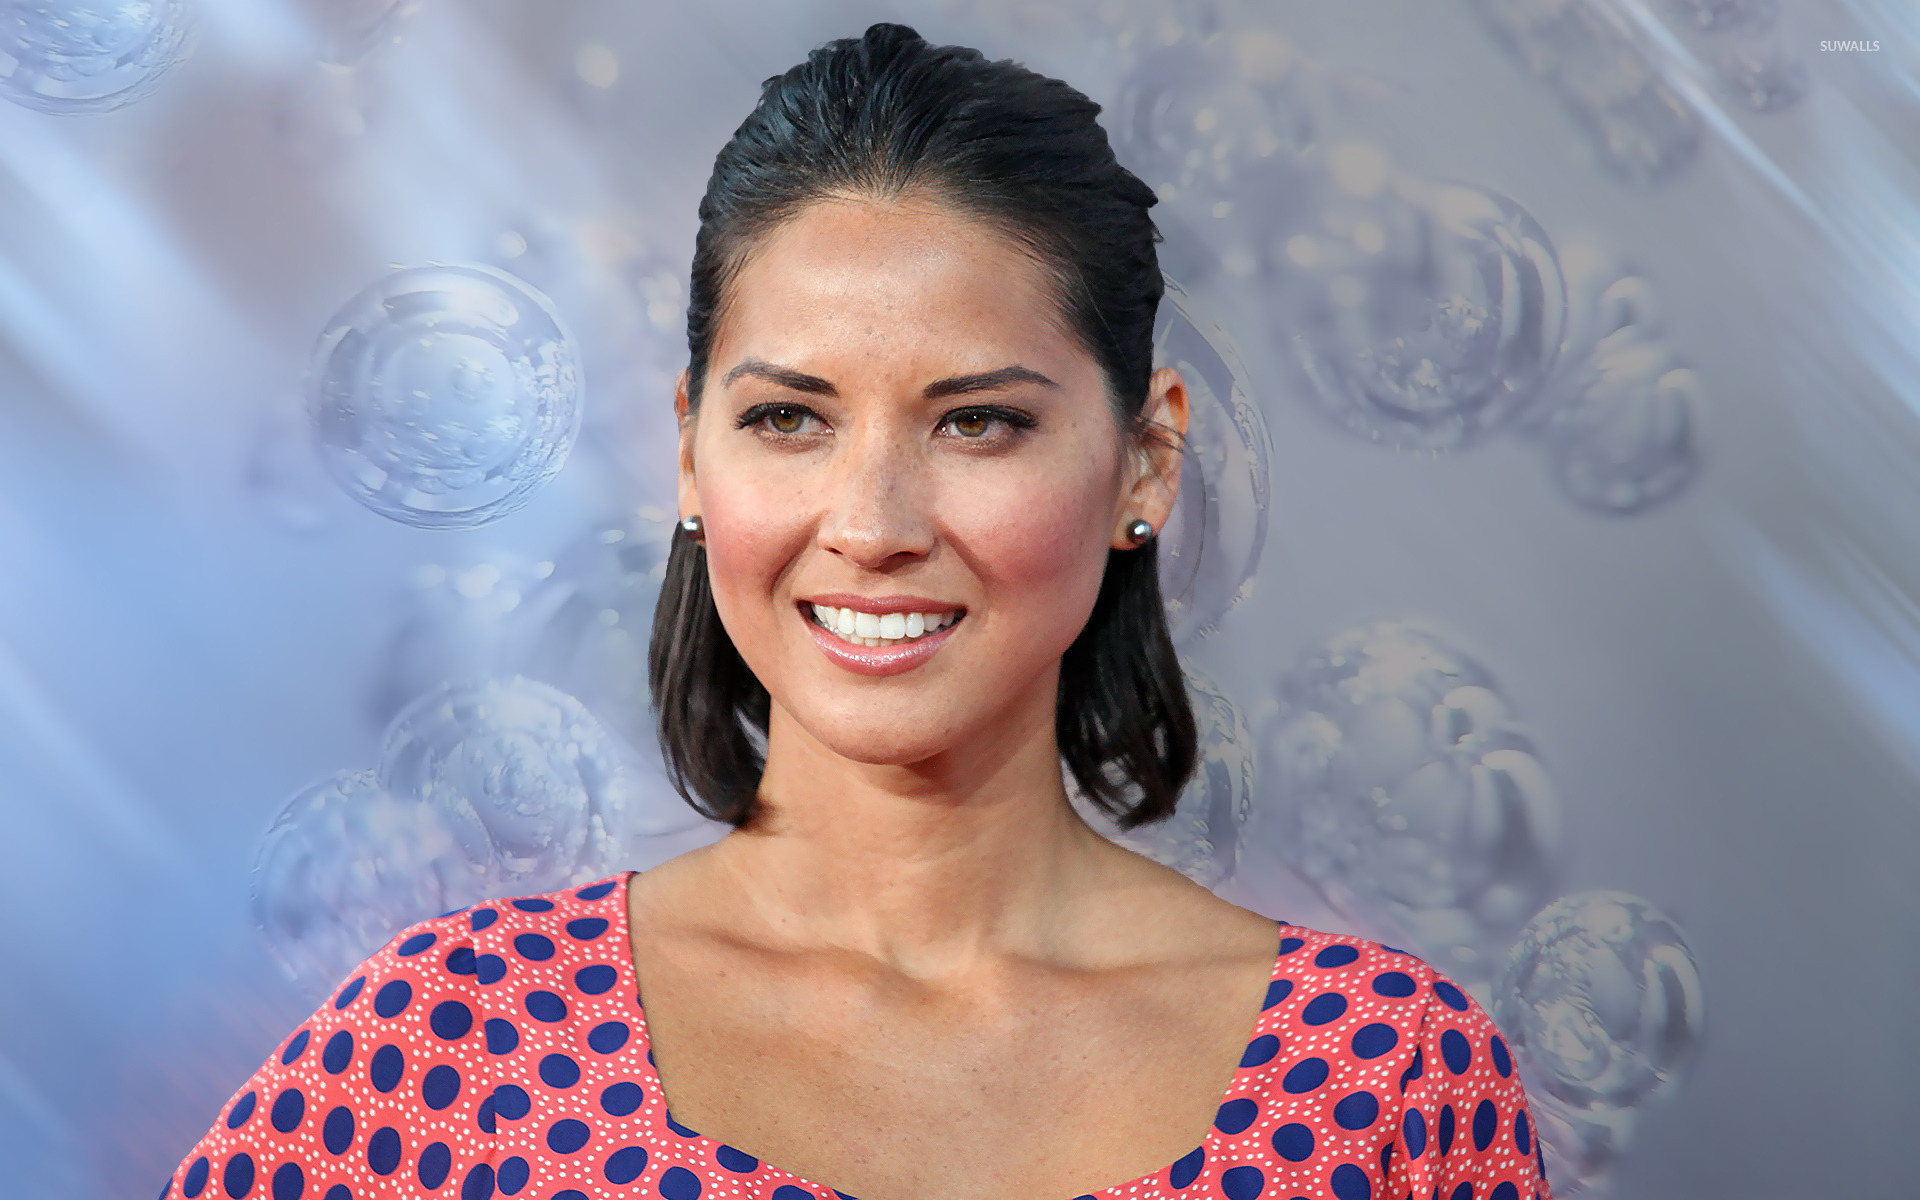 olivia munn30 1920x1080 wallpapers - photo #36